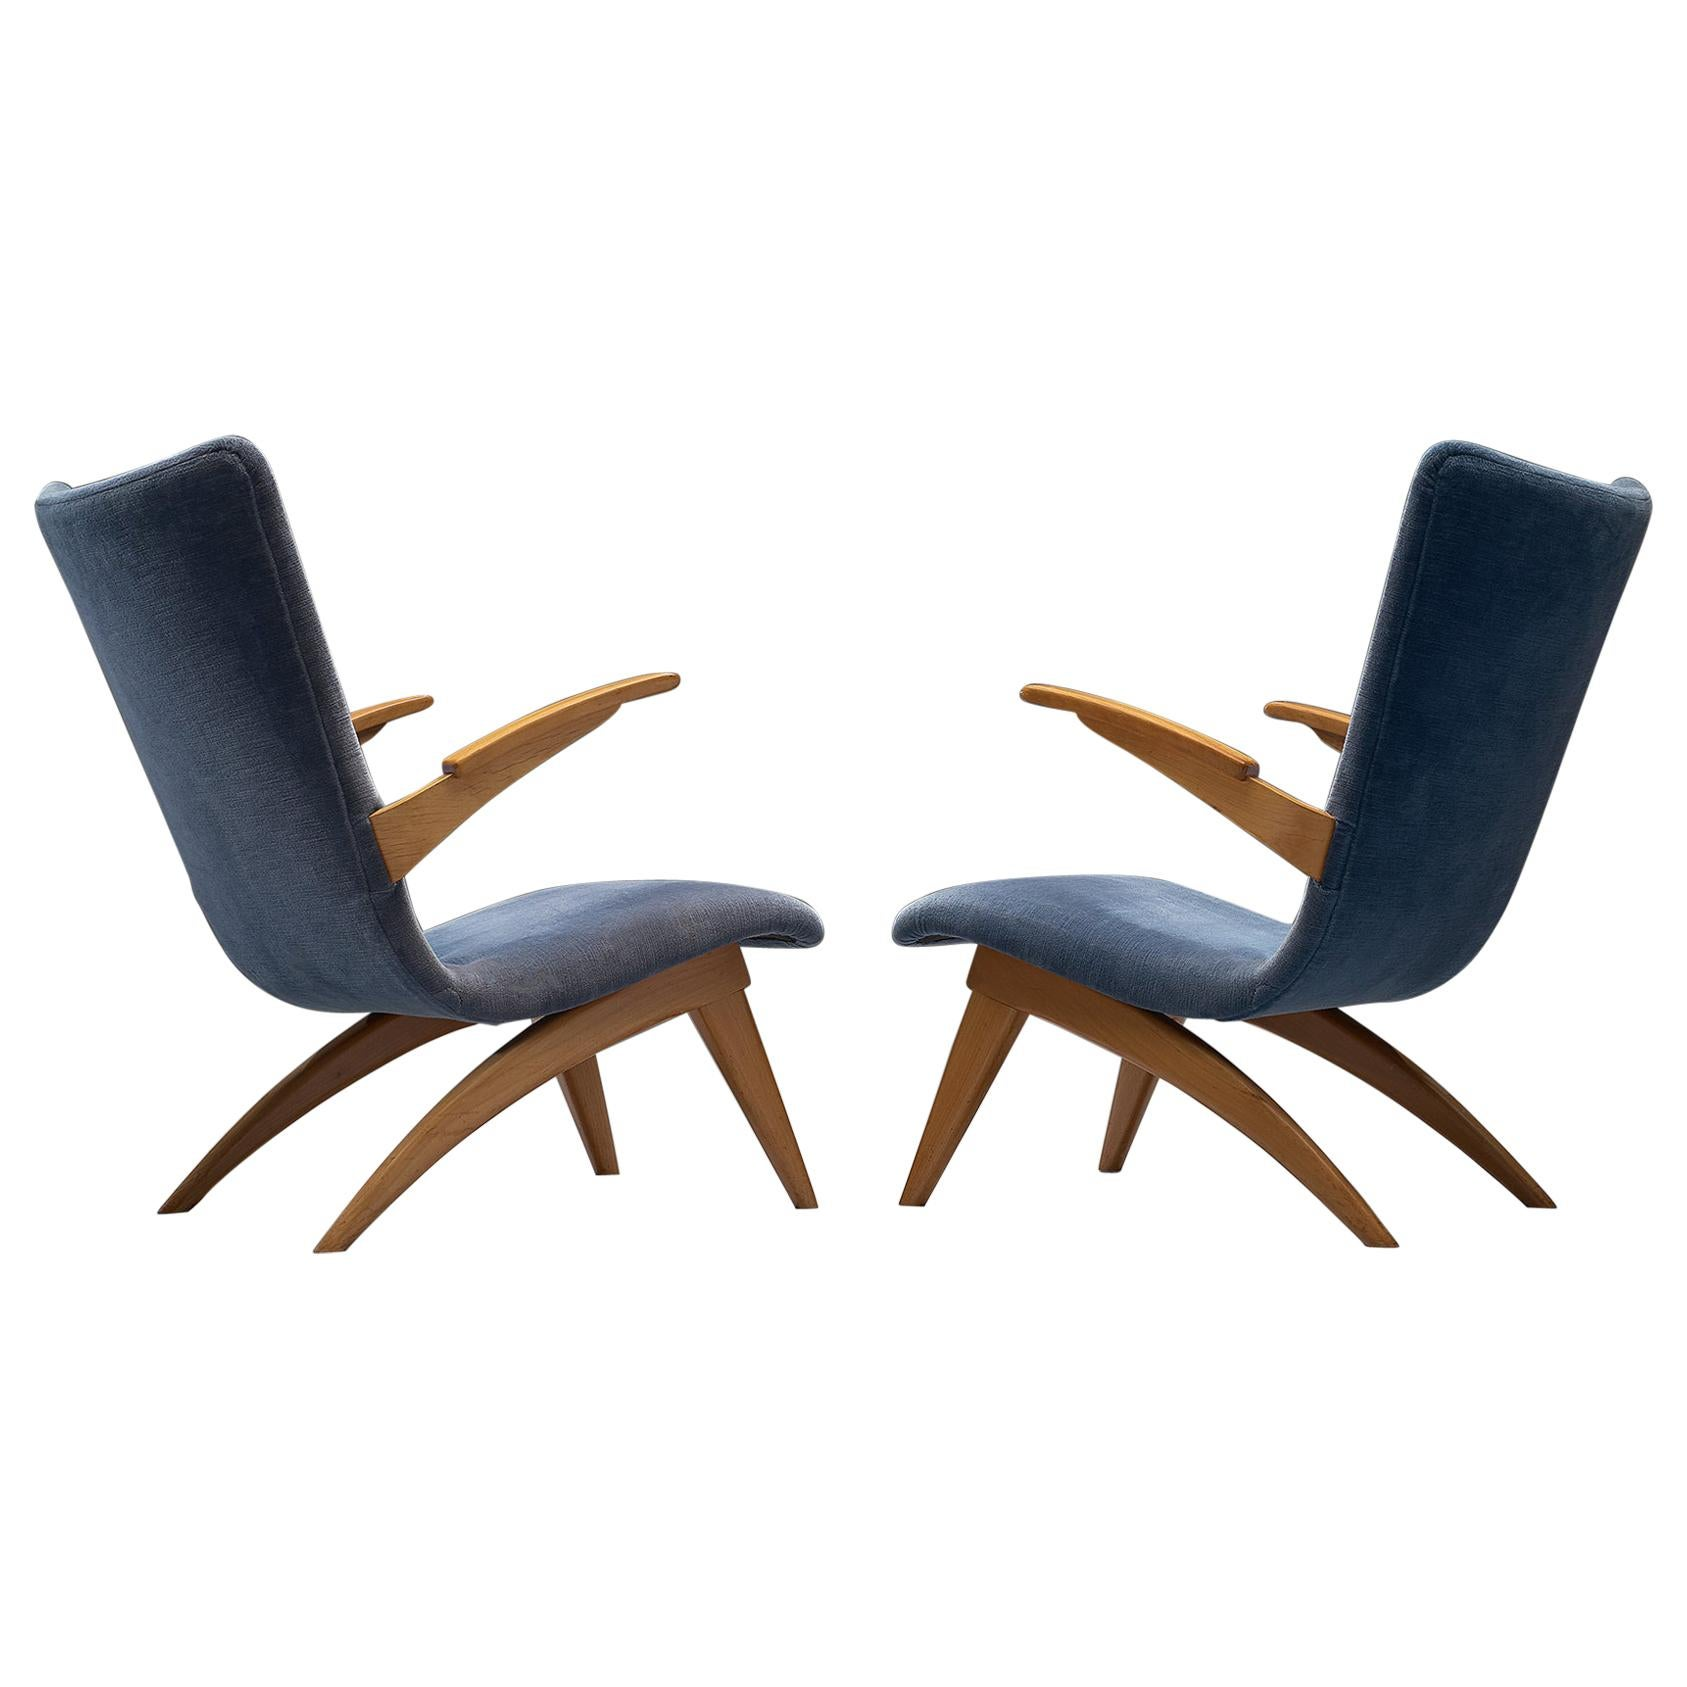 Van Os Pair of Armchairs with Blue Upholstery